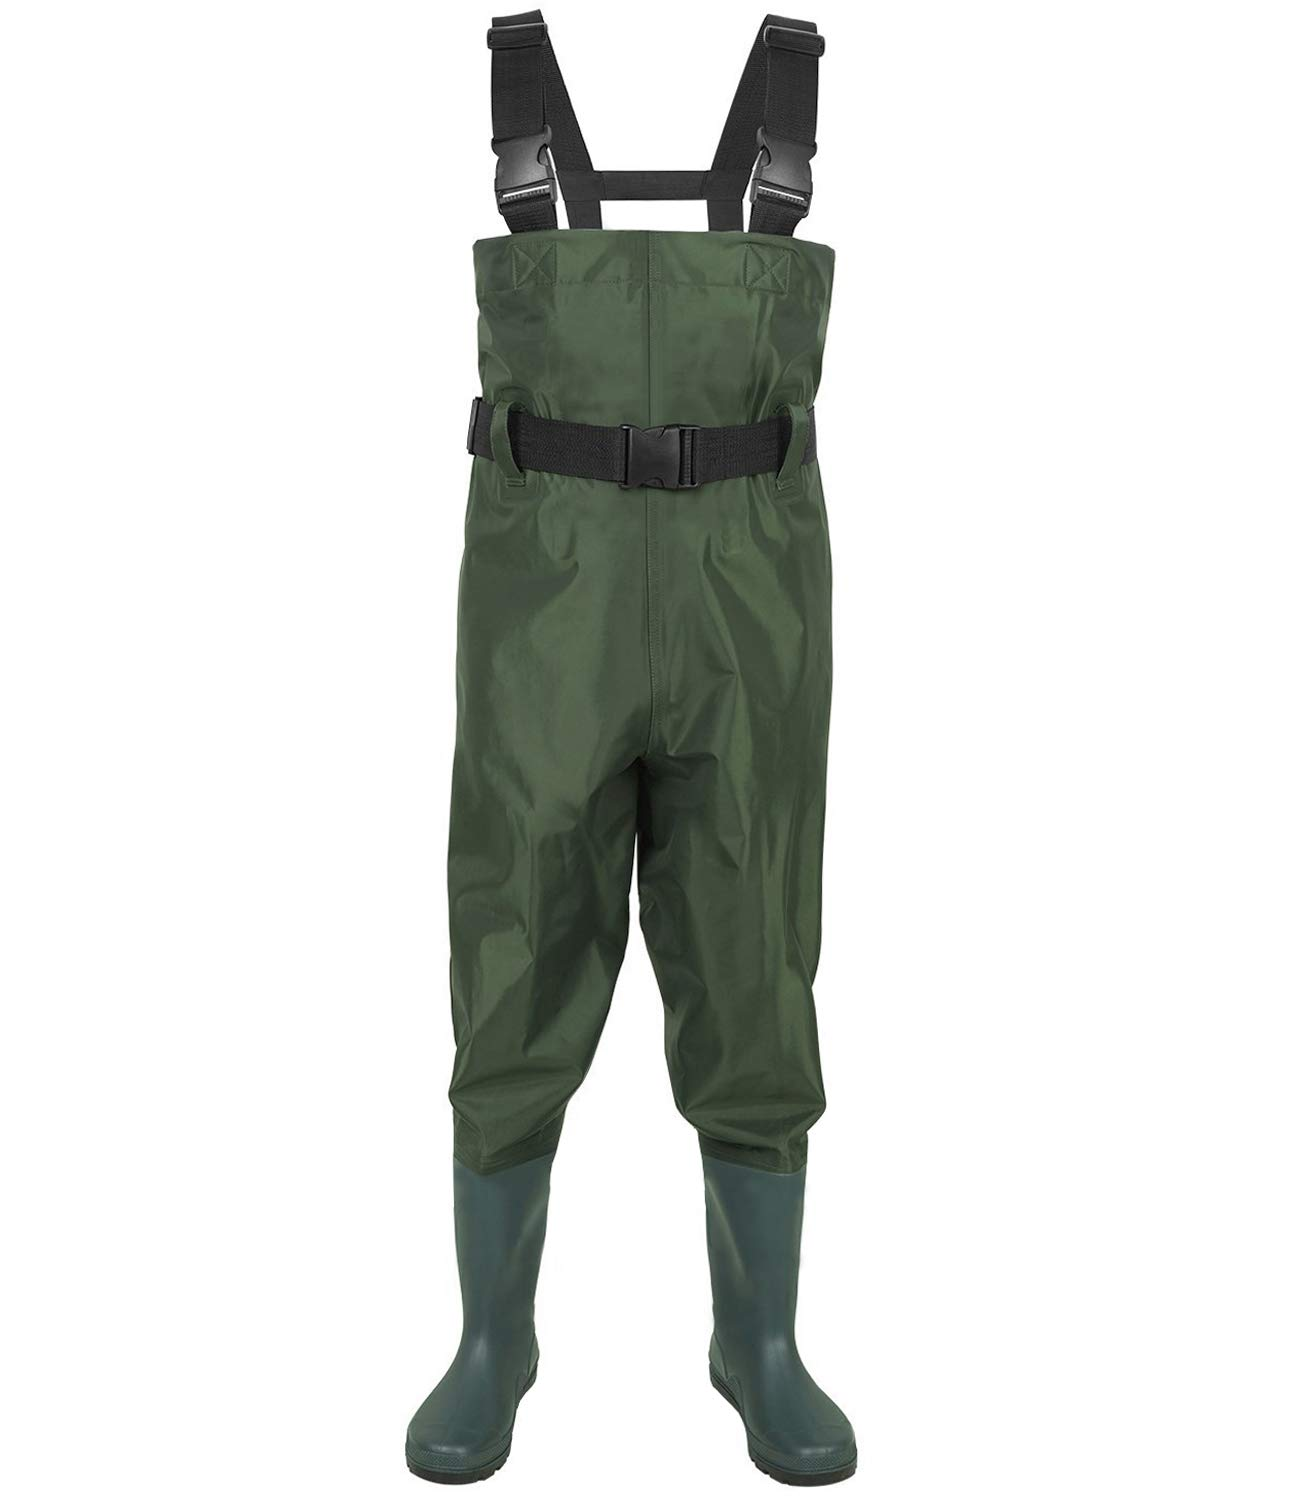 保障できる (6/7 Waders Little Kid) - LANGXUN Hip Hip Waders Kids, B07G9B4QSR Lightweight Breathable PVC Fishing Waders Children, Waterproof Bootfoot Waders Boy Girl, Army Green Chest Waders Kids B07G9B4QSR, チャイルドヴィーイクルズ:c9ef59fa --- a0267596.xsph.ru